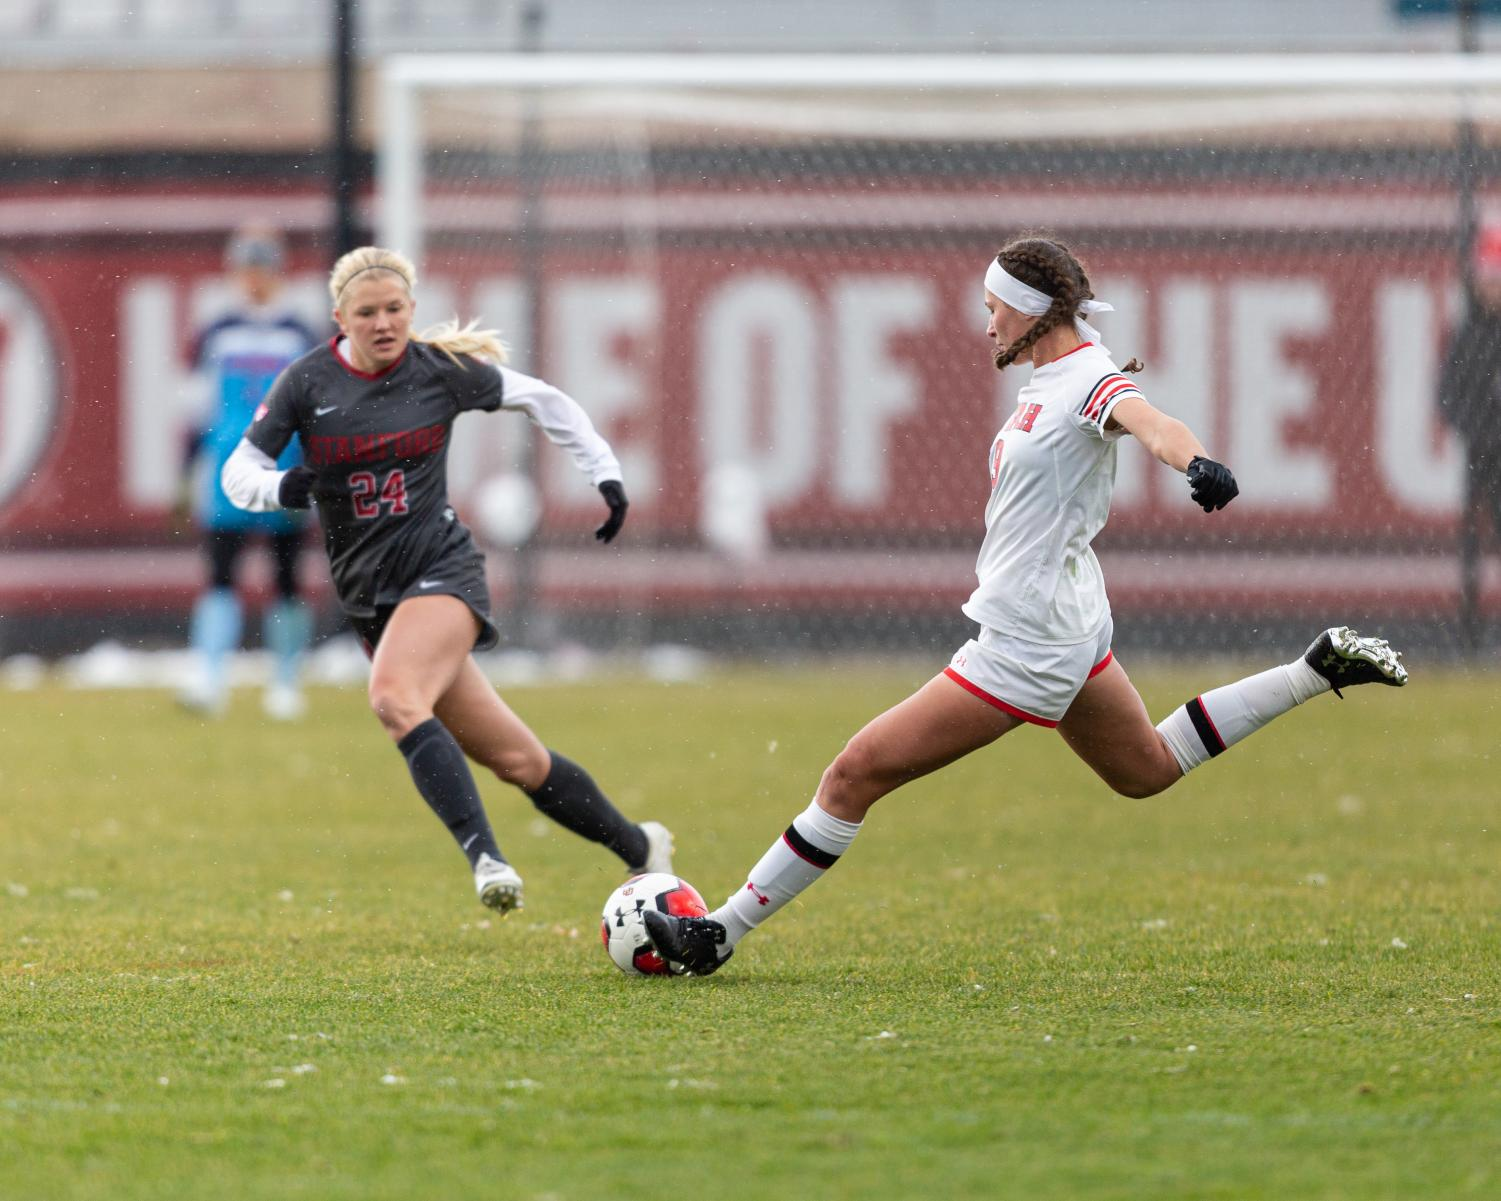 University of Utah Utes Women's soccer team defender Aleea Gwerder (9) gives a long-pass during an NCAA soccer match vs. the Stanford Cardinal women's soccer team at the Ute Soccer Field in Salt Lake City, Utah on Sunday, Oct. 27, 2019 (Photo by Abu Asib   The Daily Utah Chronicle)